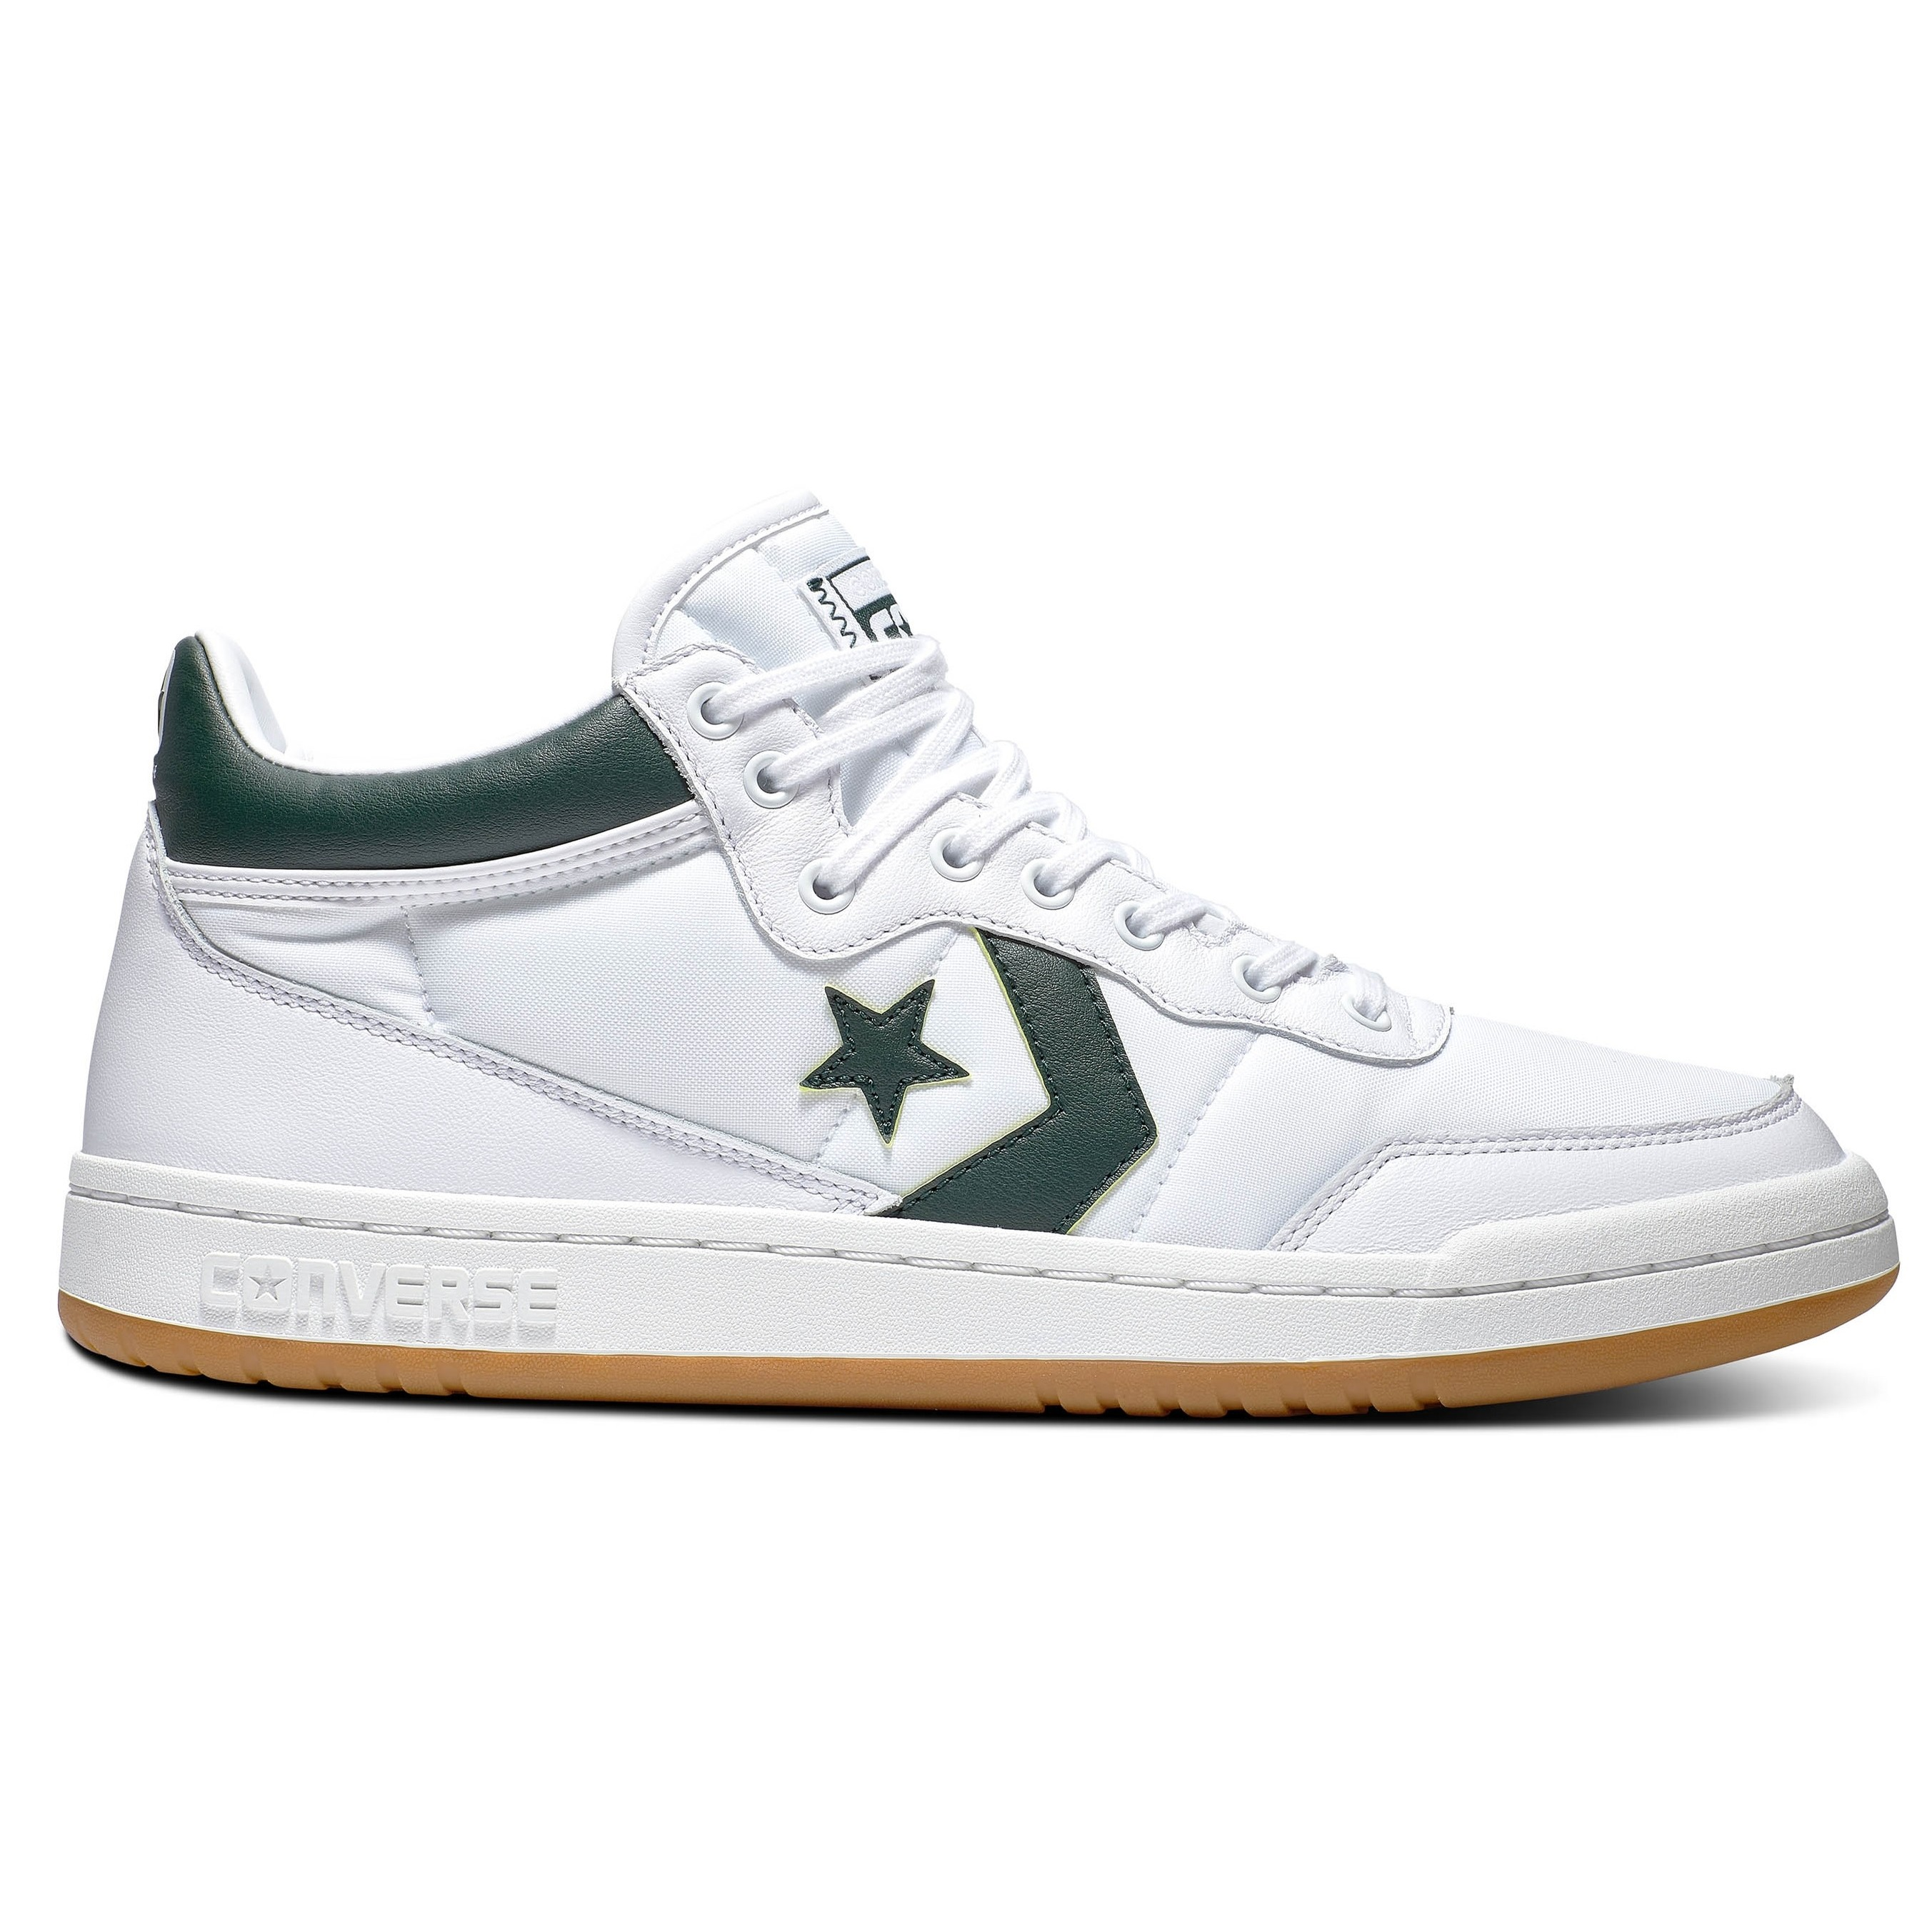 Fastbreak Pro Mid (White/Deep Emerald/Gum)